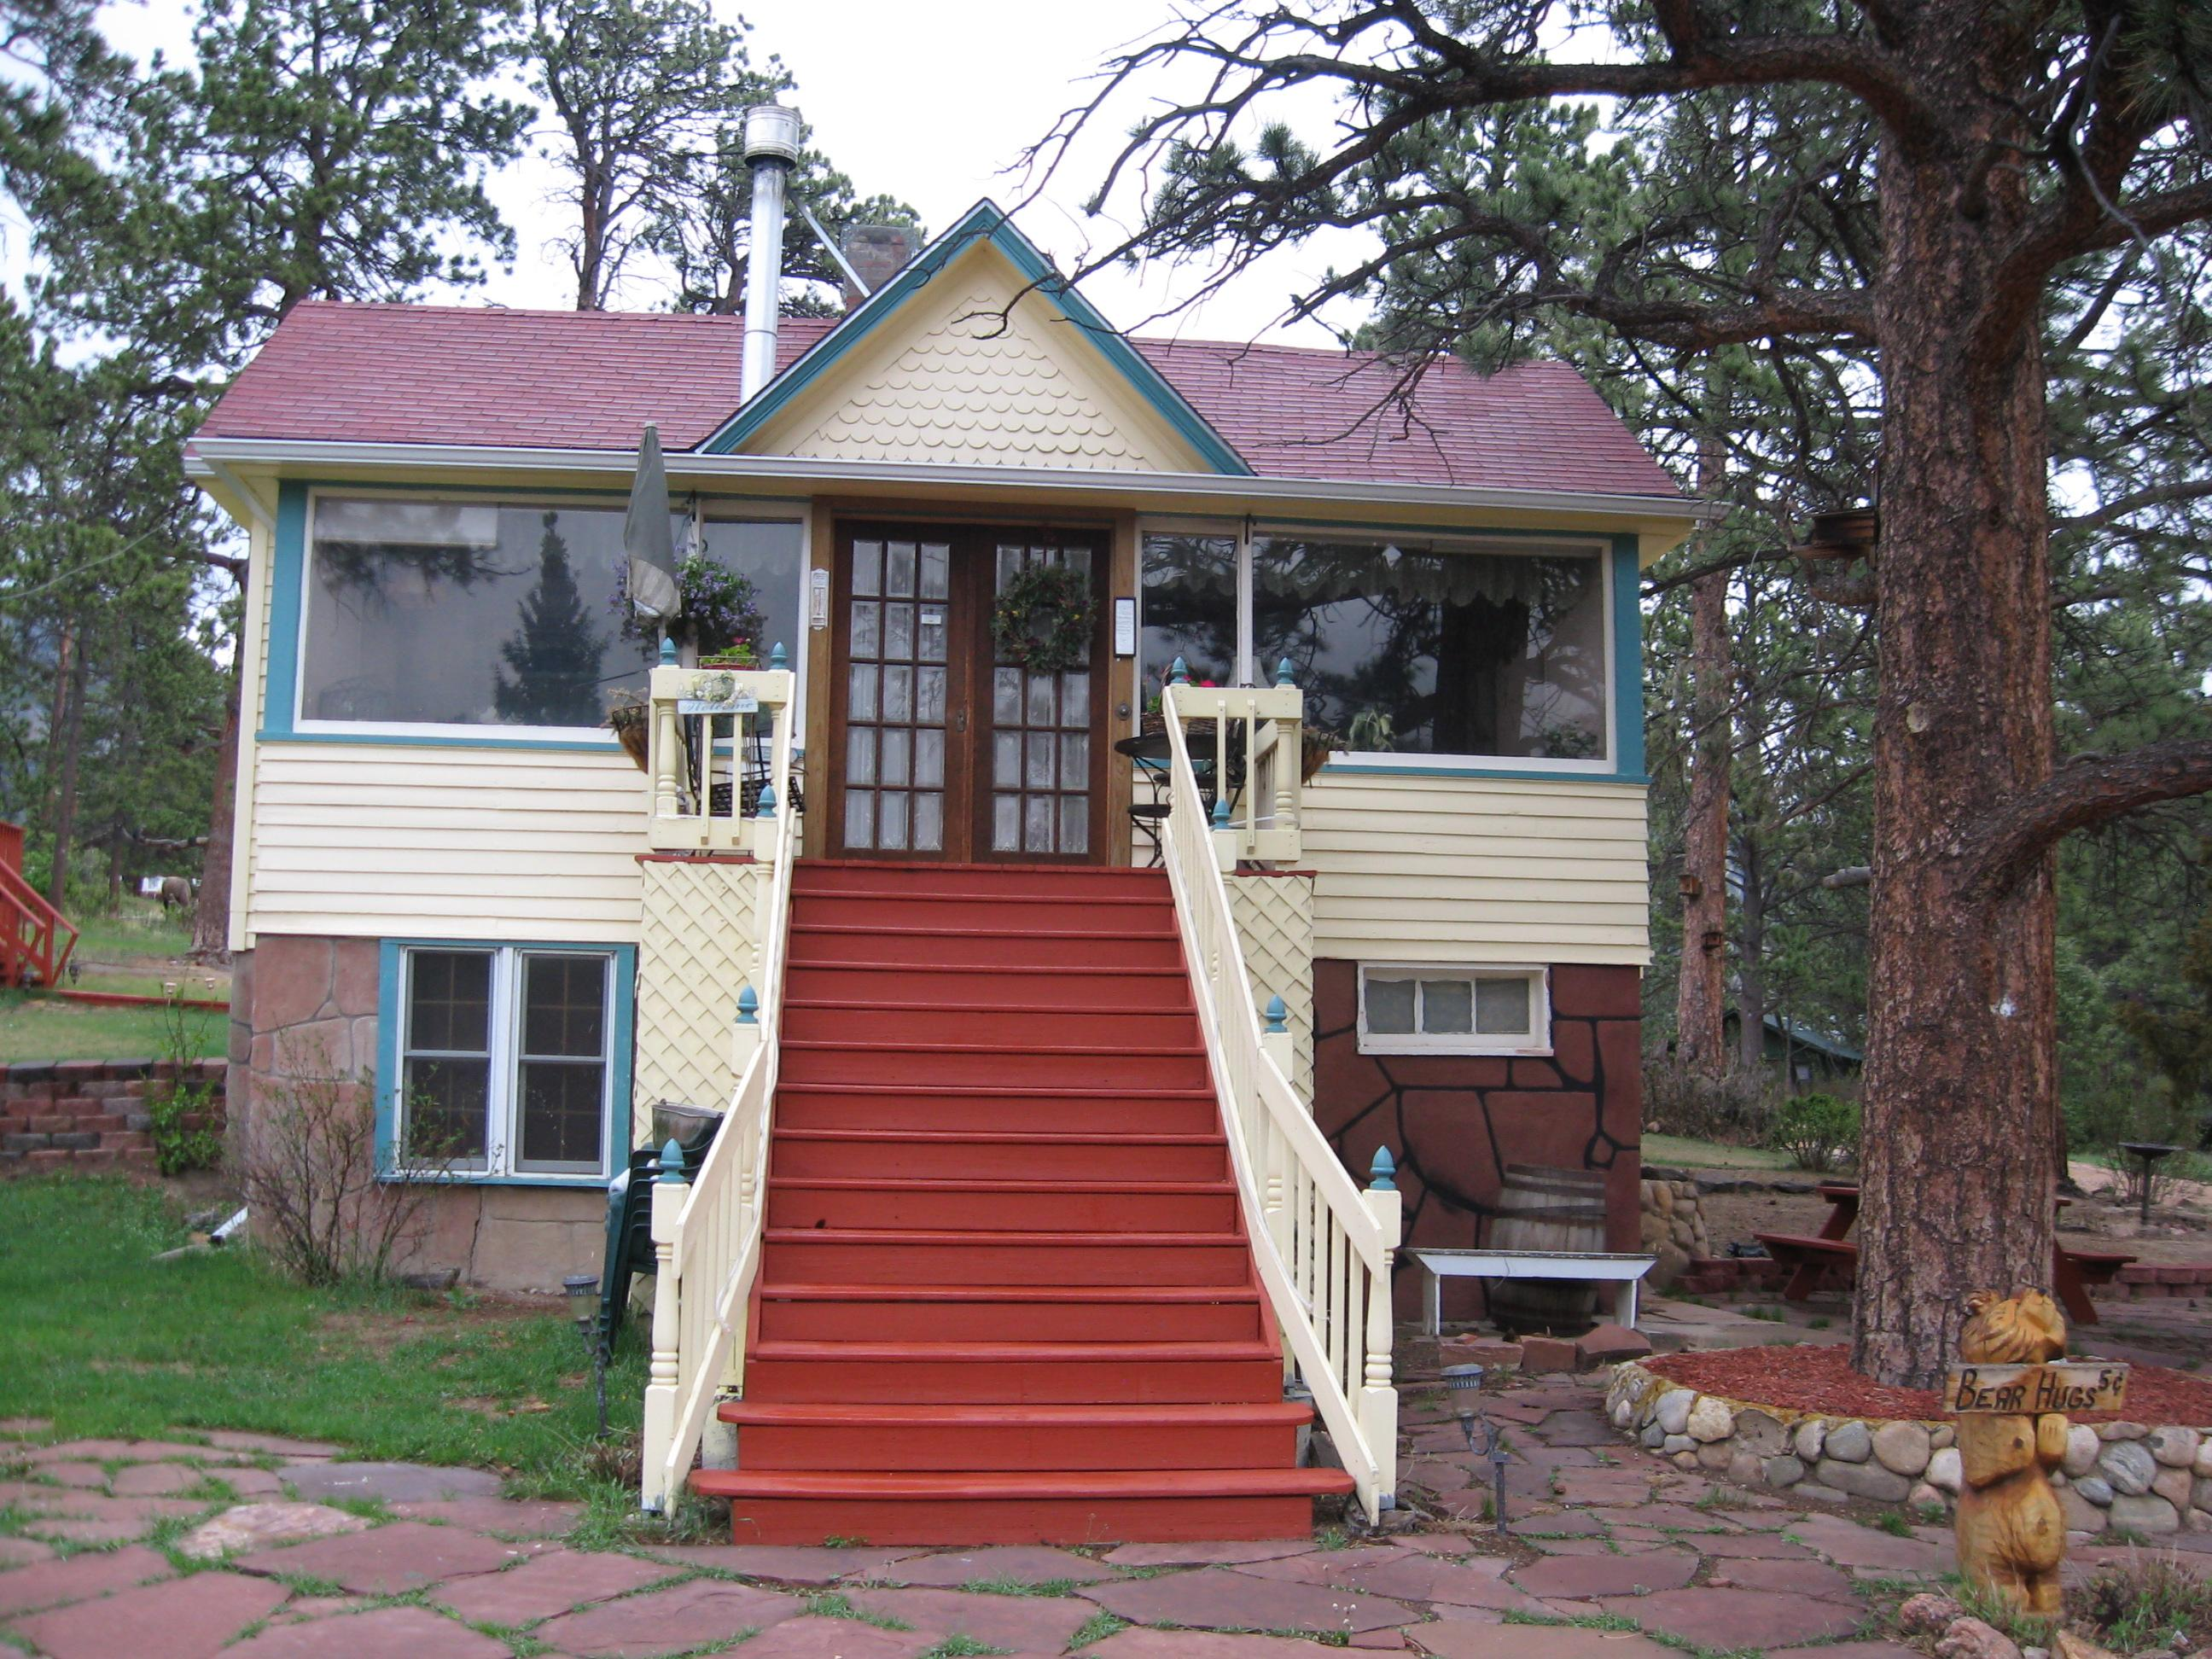 Gilded Pine Meadows Bed and Breakfast